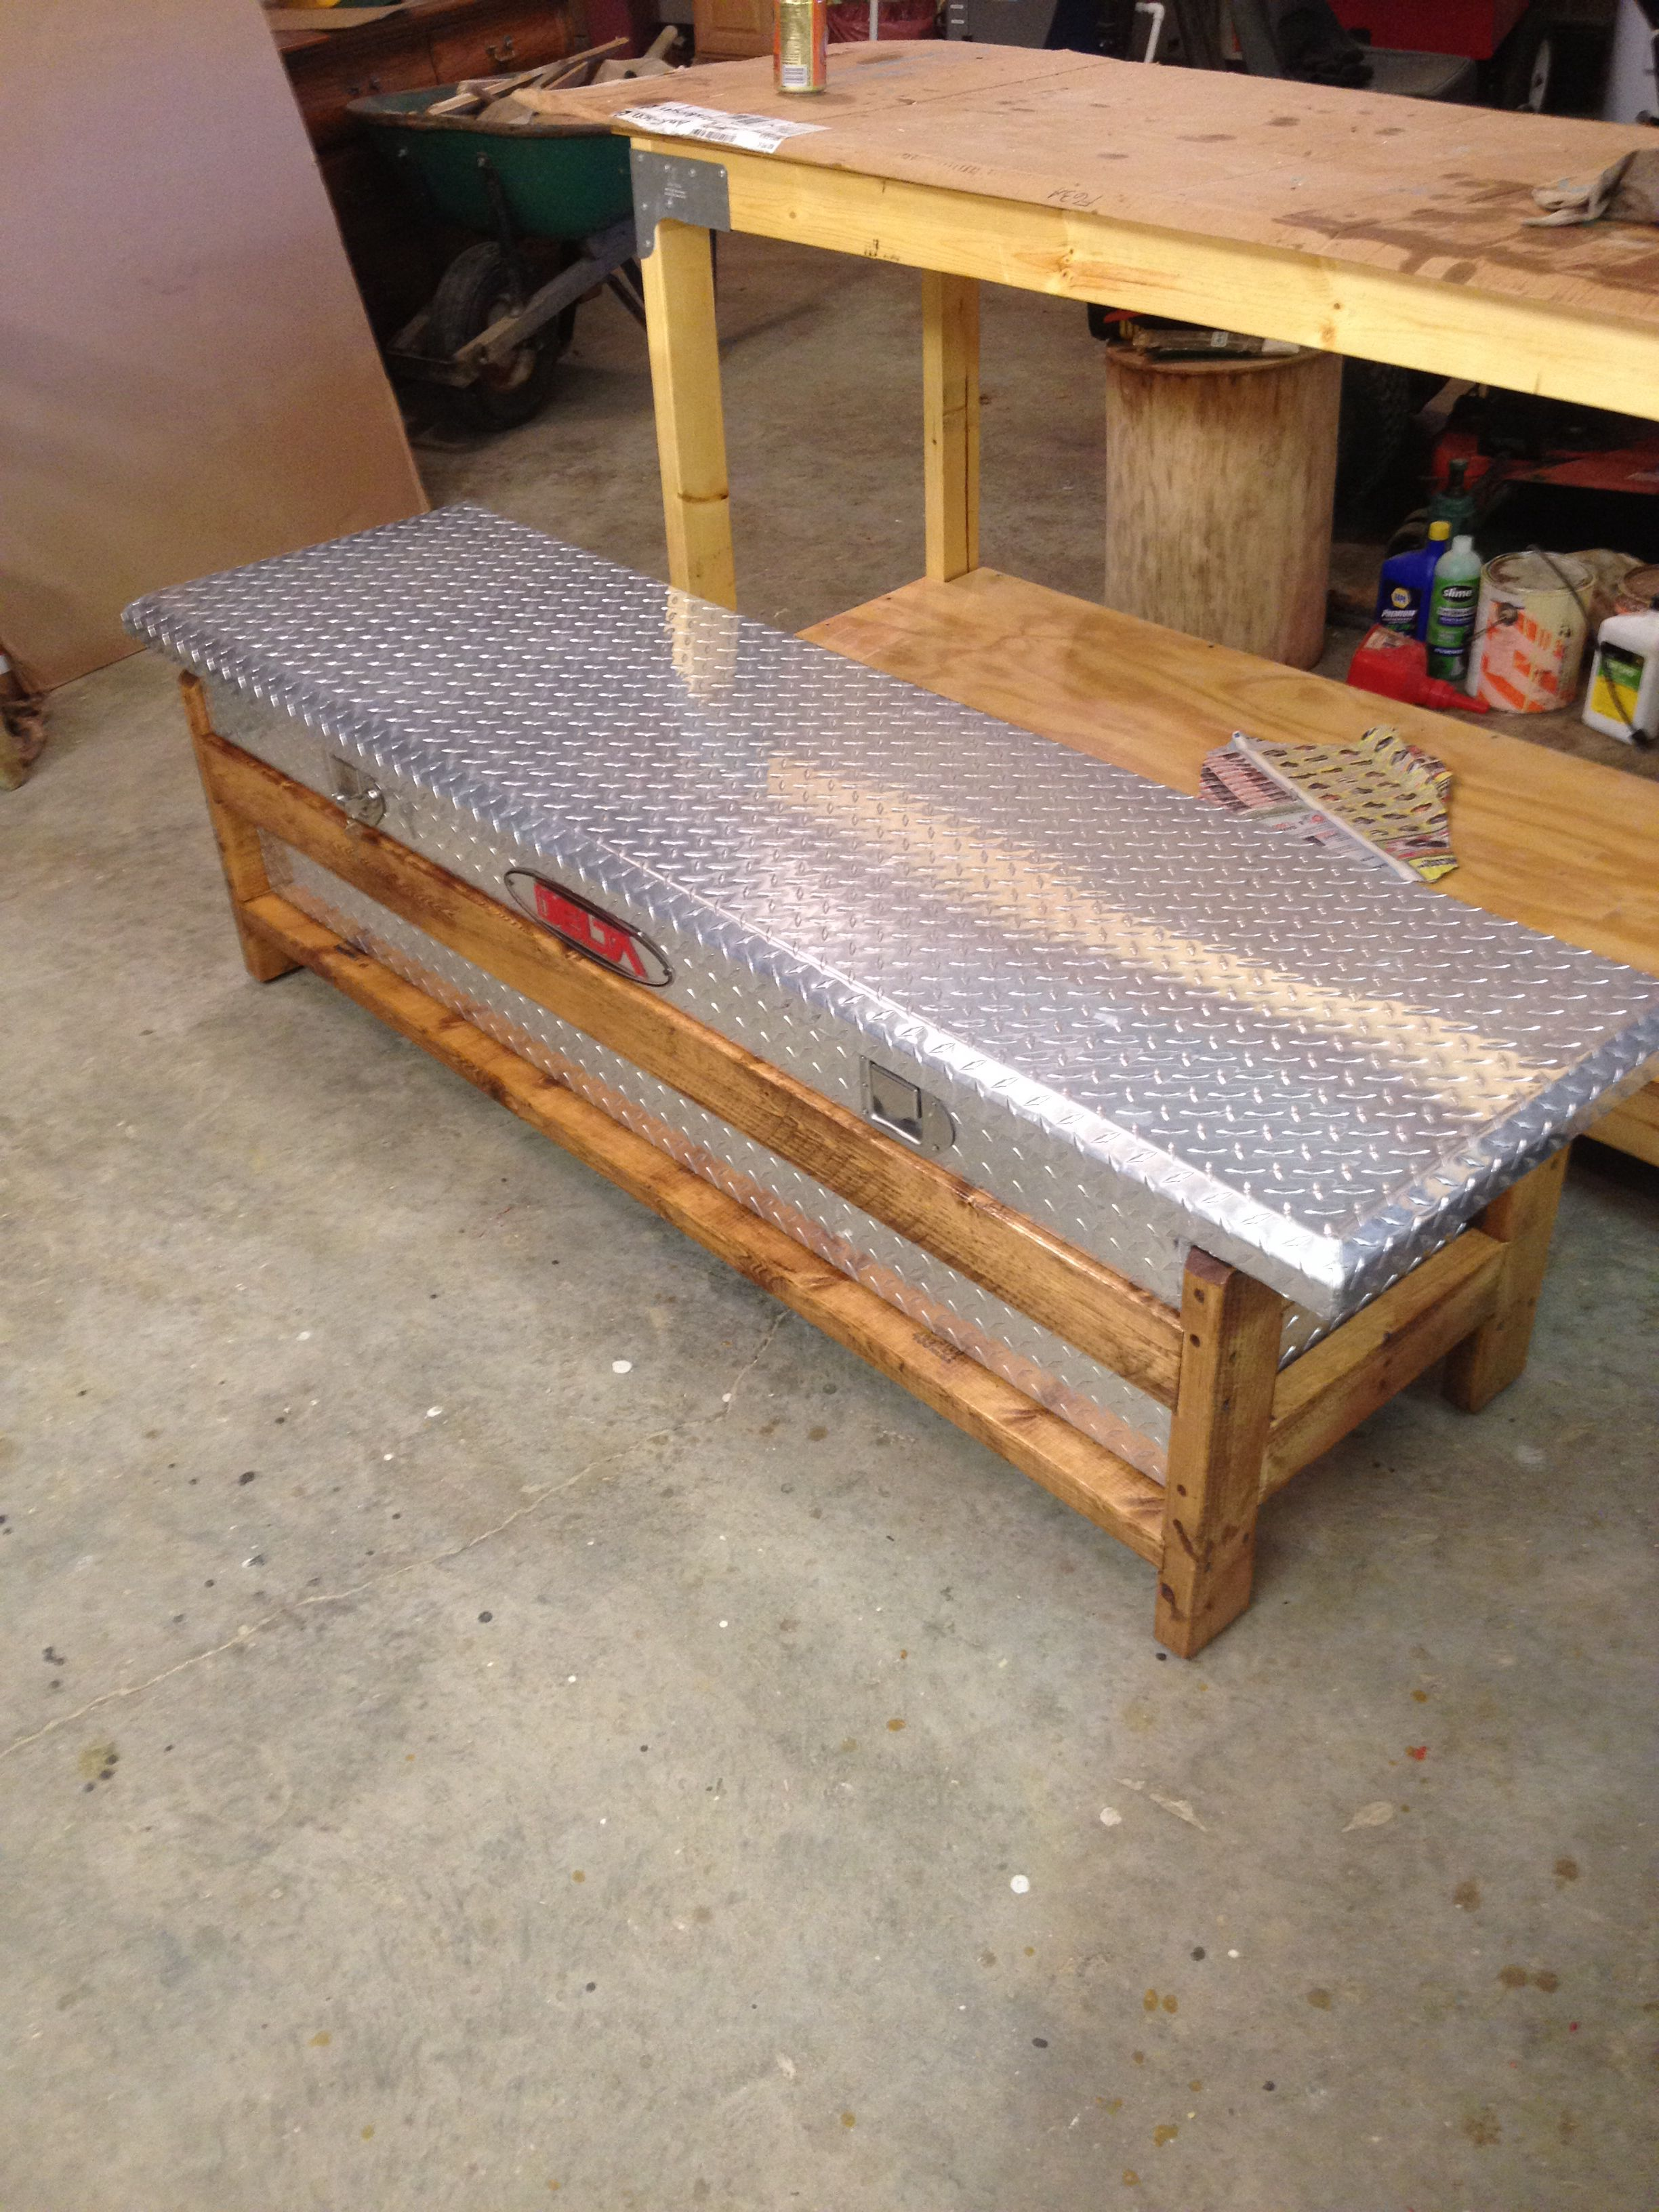 Swell Truck Toolbox Turned Into Storage Bench Home Garden Creativecarmelina Interior Chair Design Creativecarmelinacom